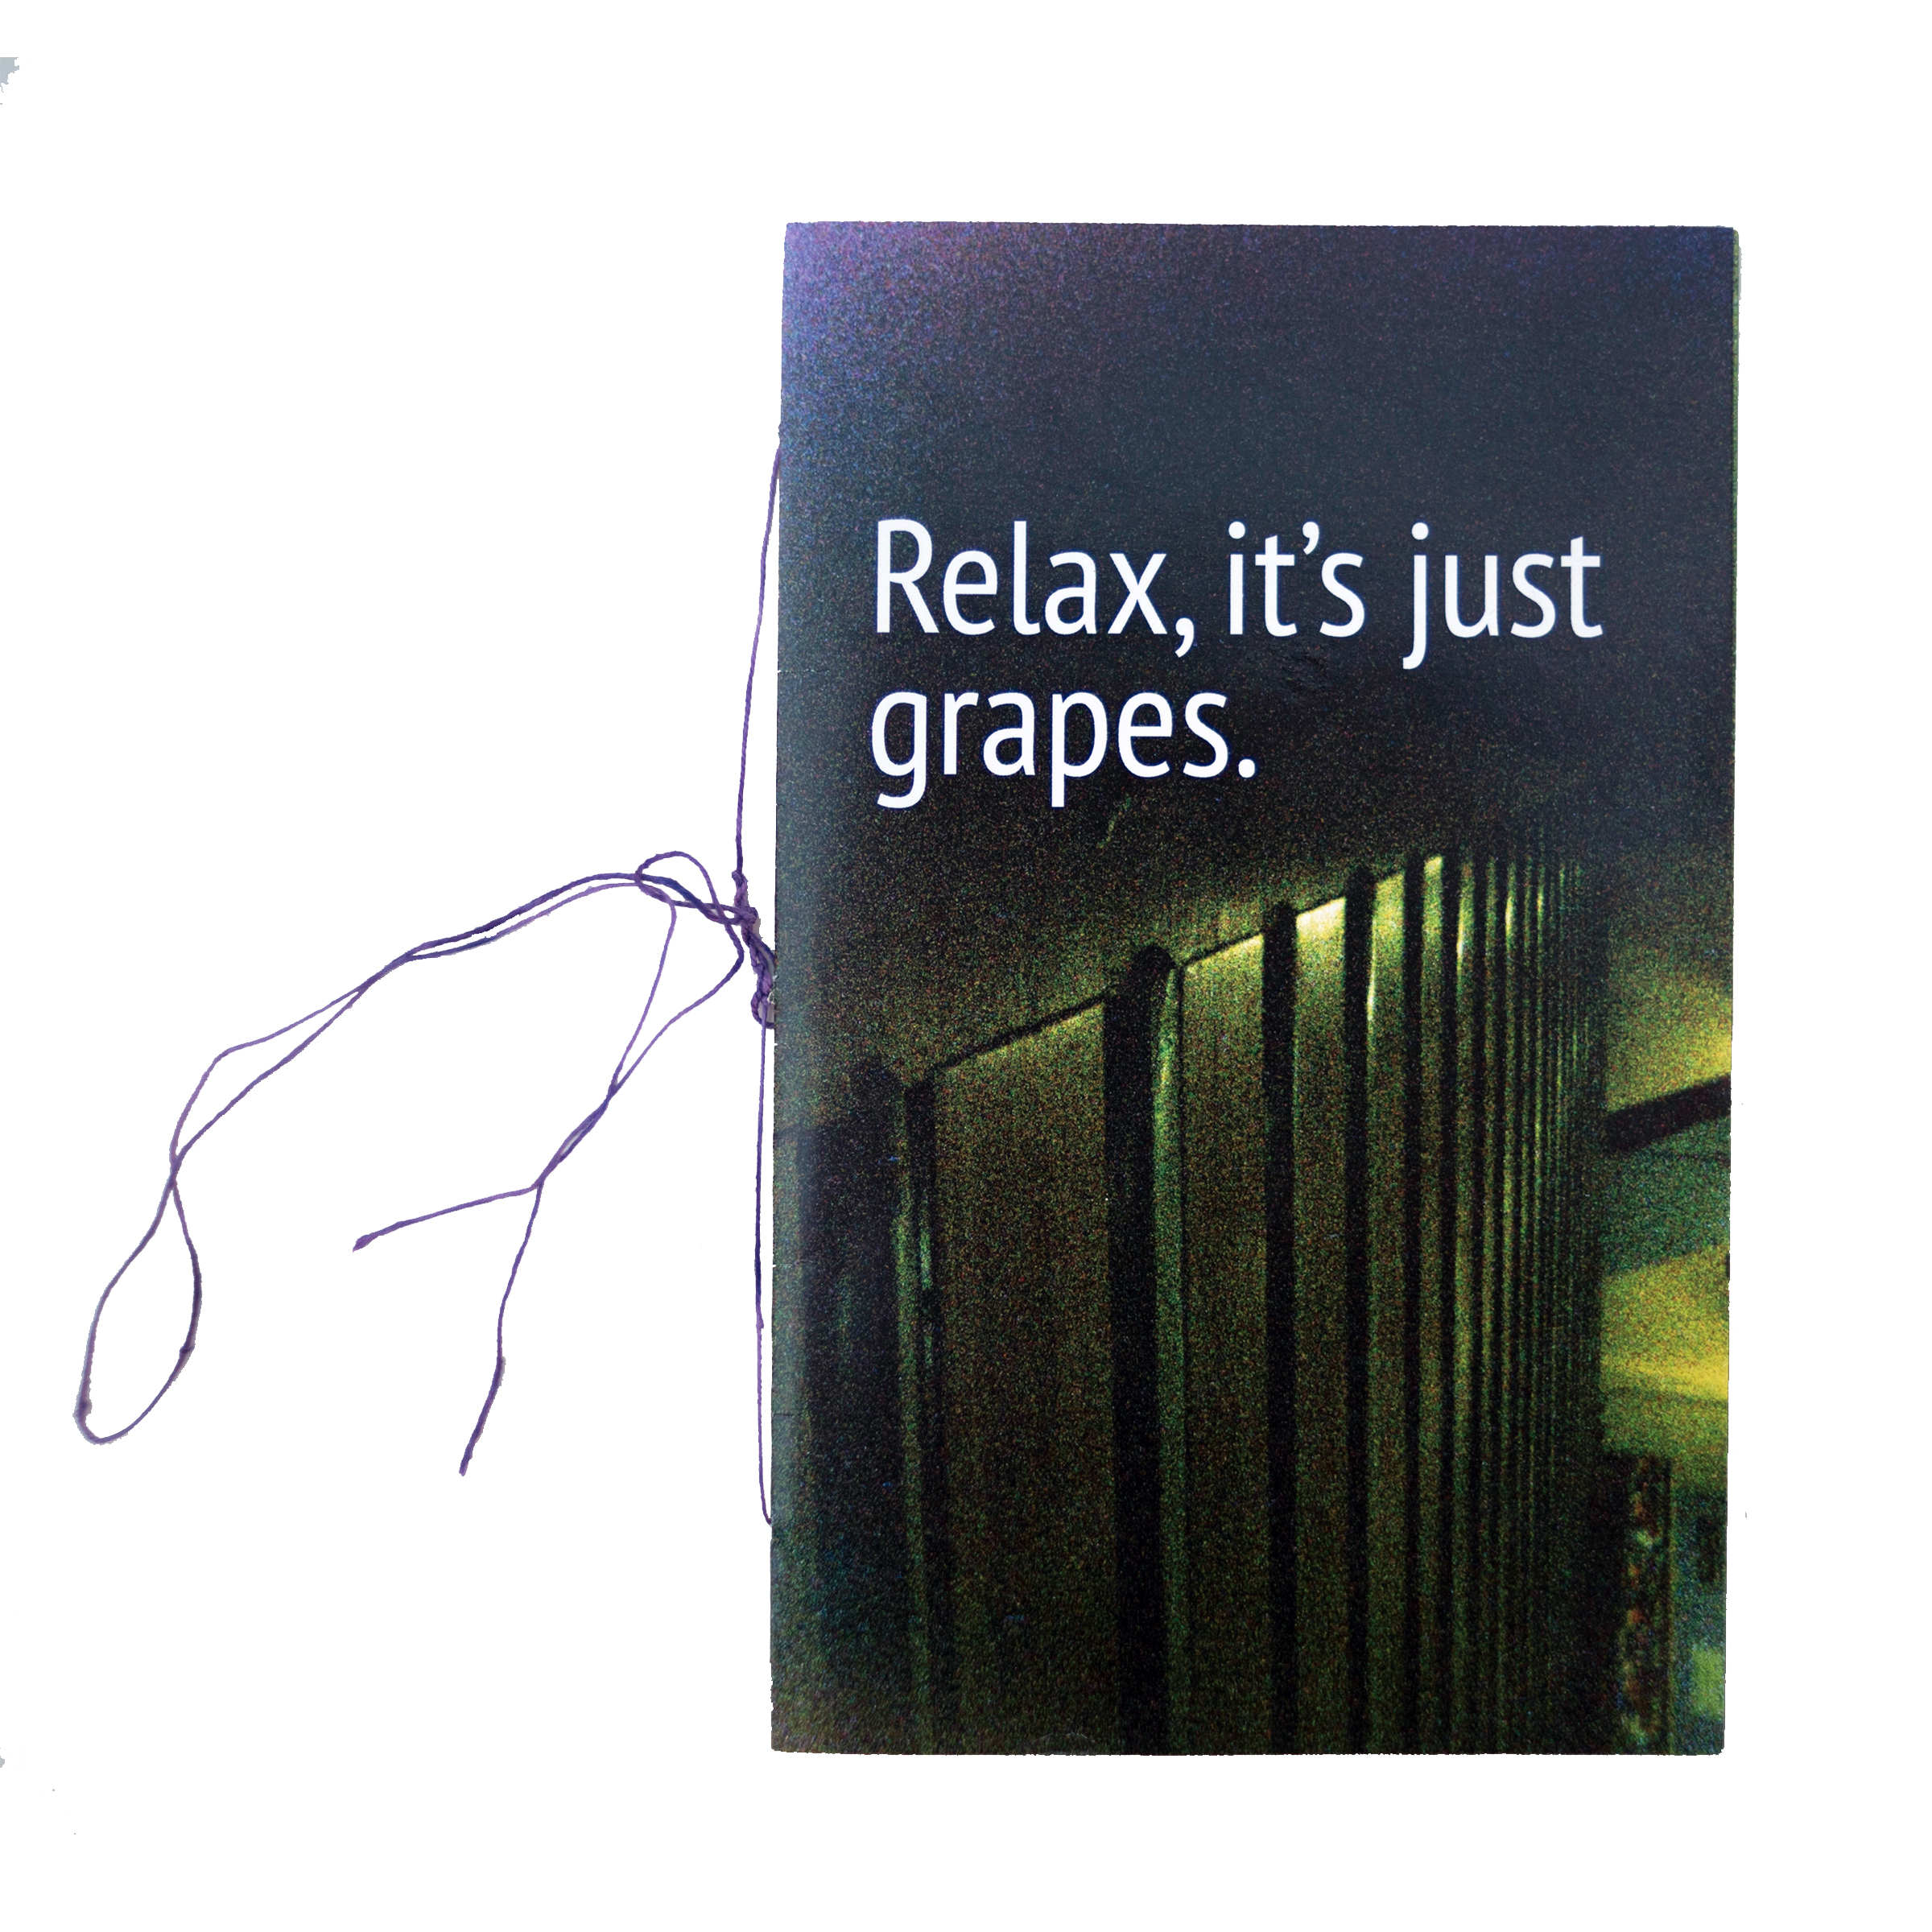 Relax, it's just grapes  $10 (U.S. shipping included)